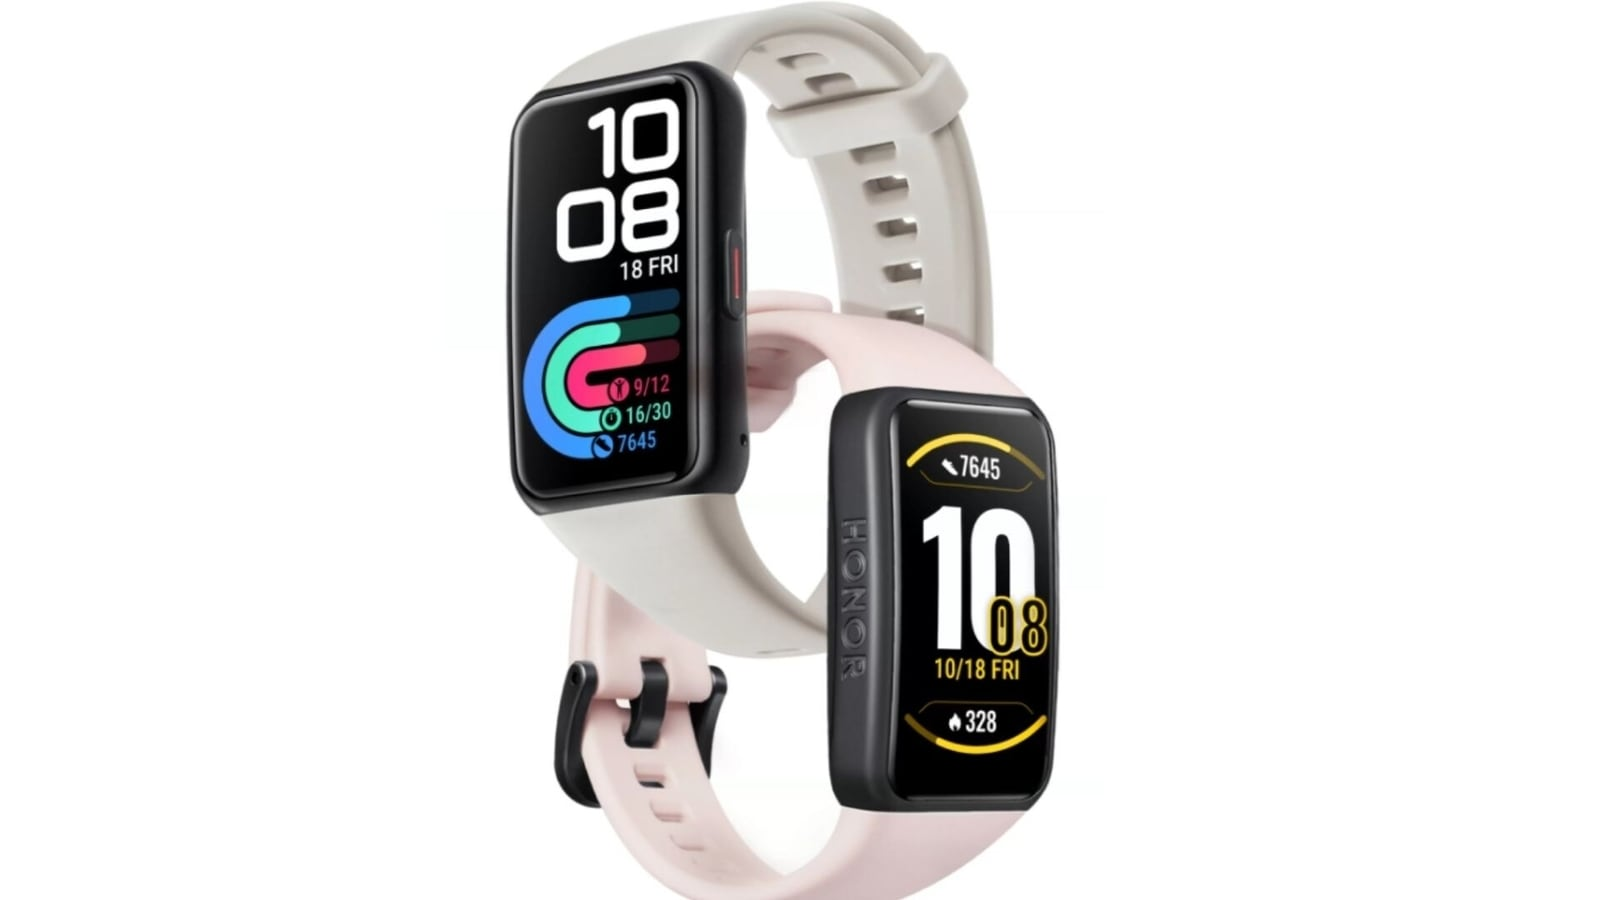 Band of Honor with a 14 day battery to launch in India soon